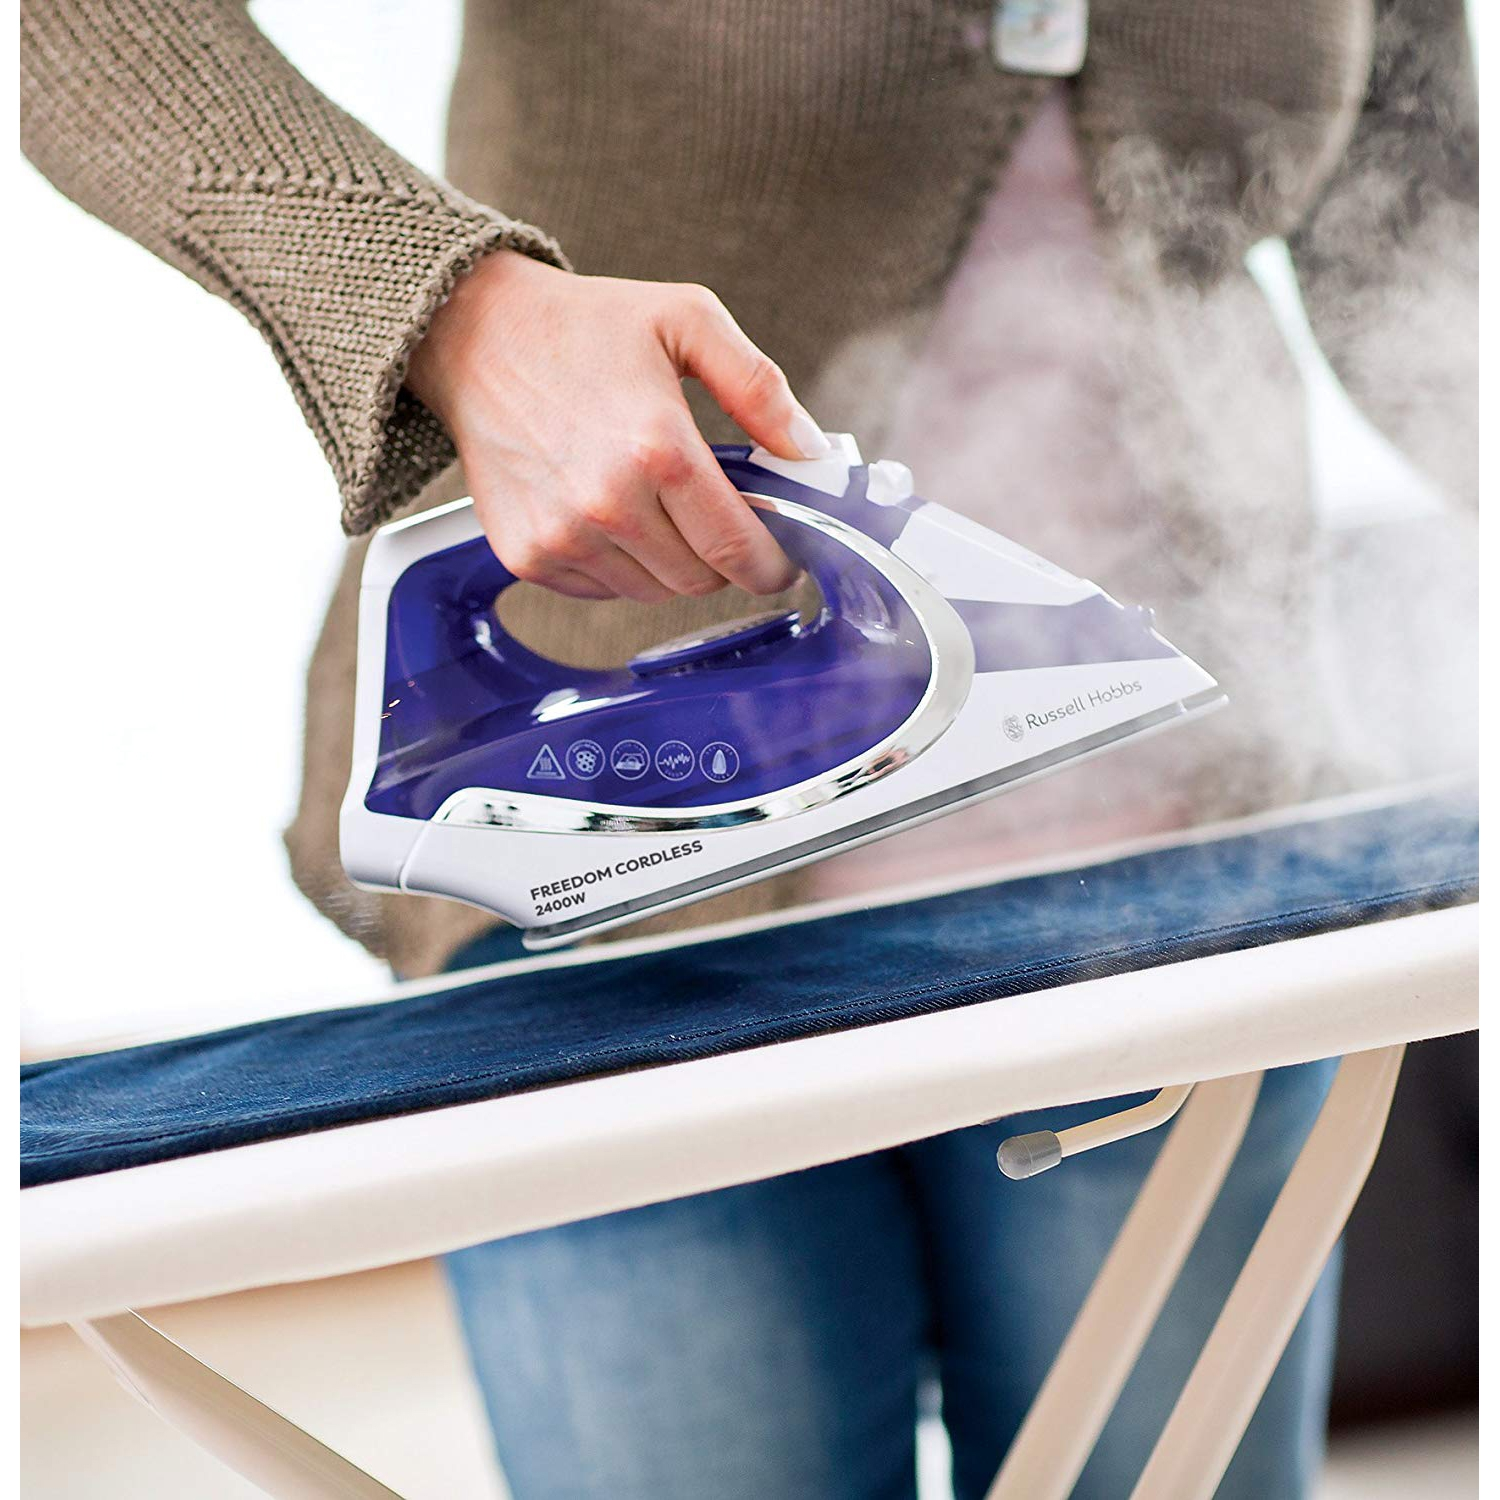 Image of Russell Hobbs Freedom Cordless Steam Iron